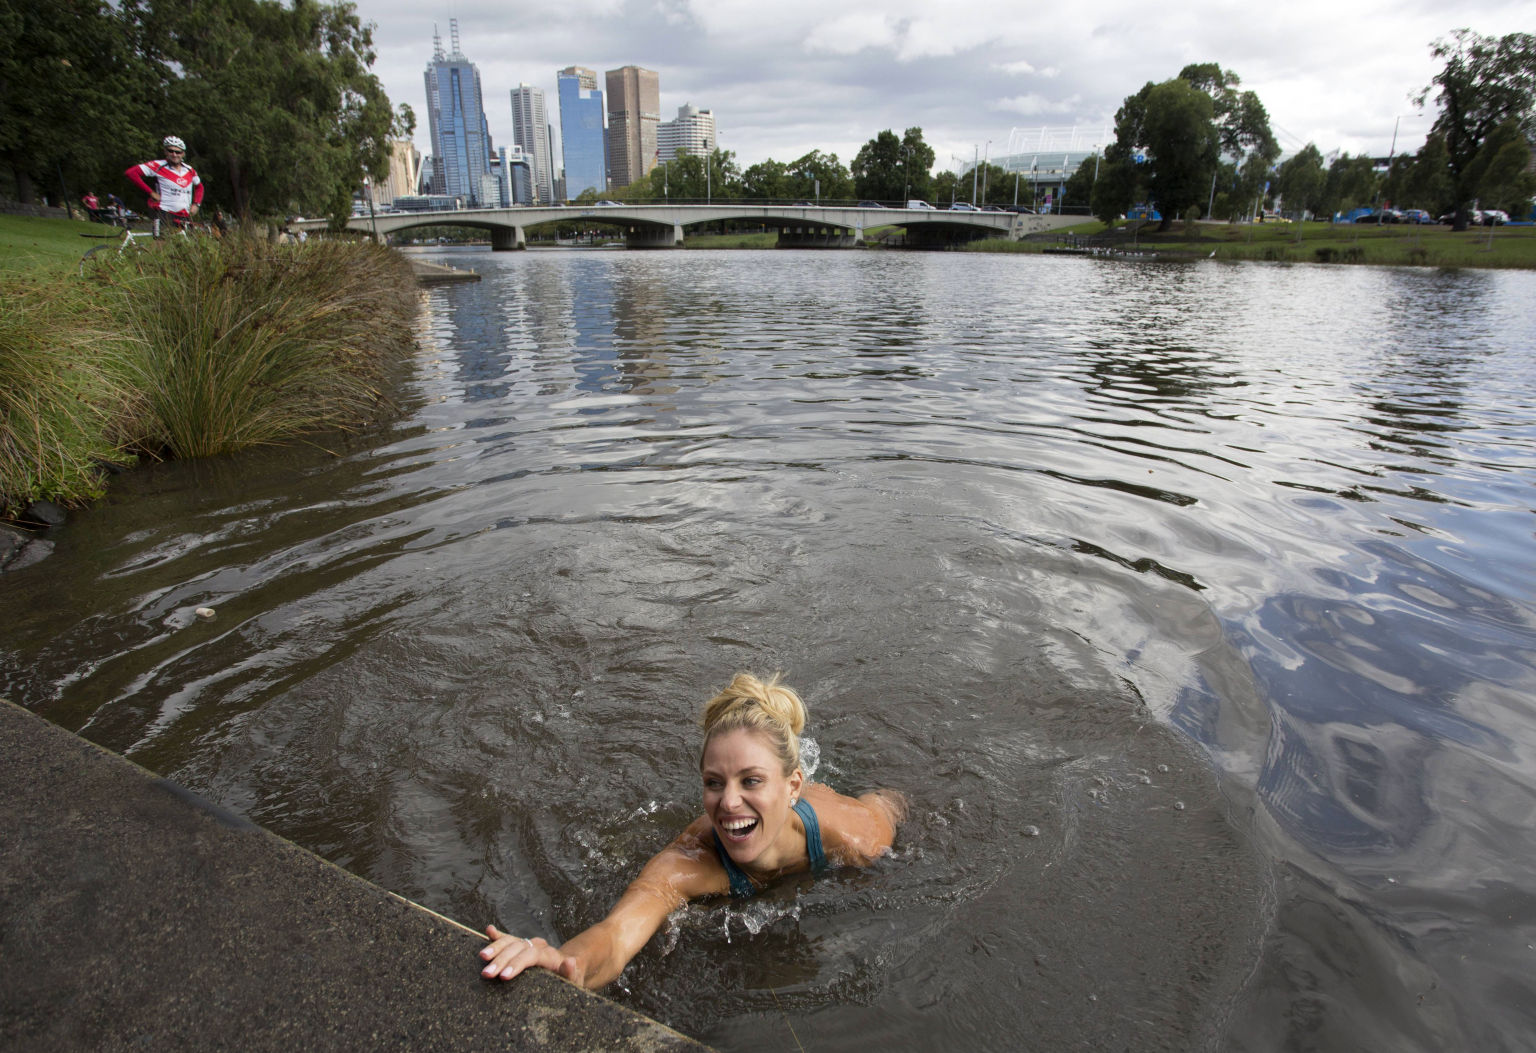 MELBOURNE, VICTORIA - JANUARY 31:  In this handout photo provided by Tennis Australia, Angelique Kerber of Germany jumps into the Yarra River on day 14 of the 2016 Australian Open at Melbourne Park on January 31, 2016 in Melbourne, Australia. Kerber defeated Serena Williams of the United States to win the Australian Women's Singles Final. (Photo by Fiona Hamilton/Tennis Australia via Getty Images)